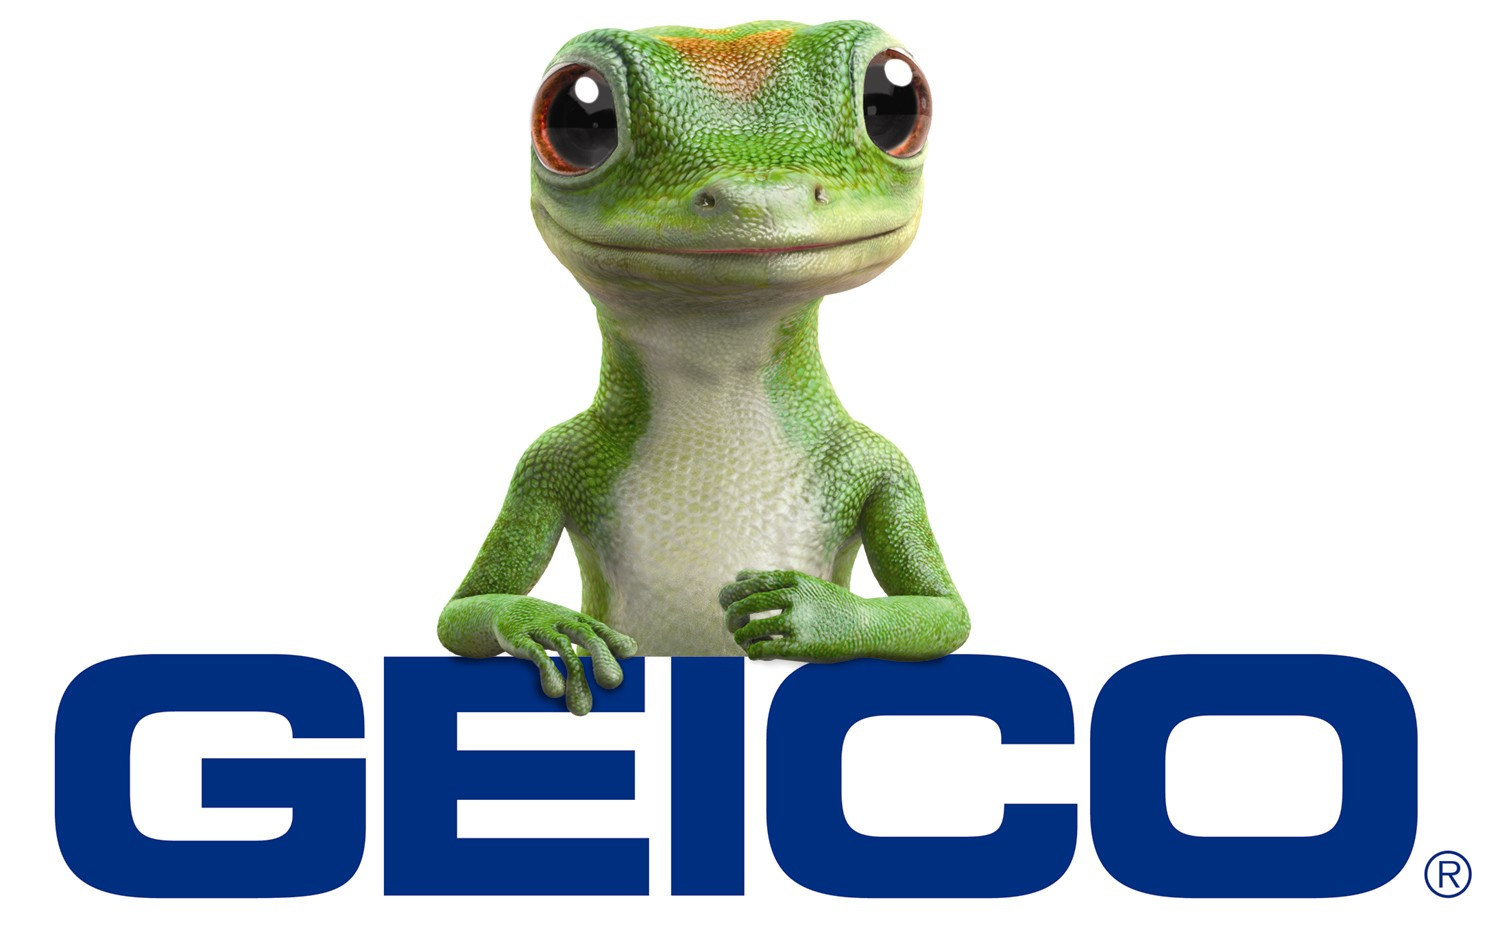 The Geico Gecko | English 4620: Advanced Writing